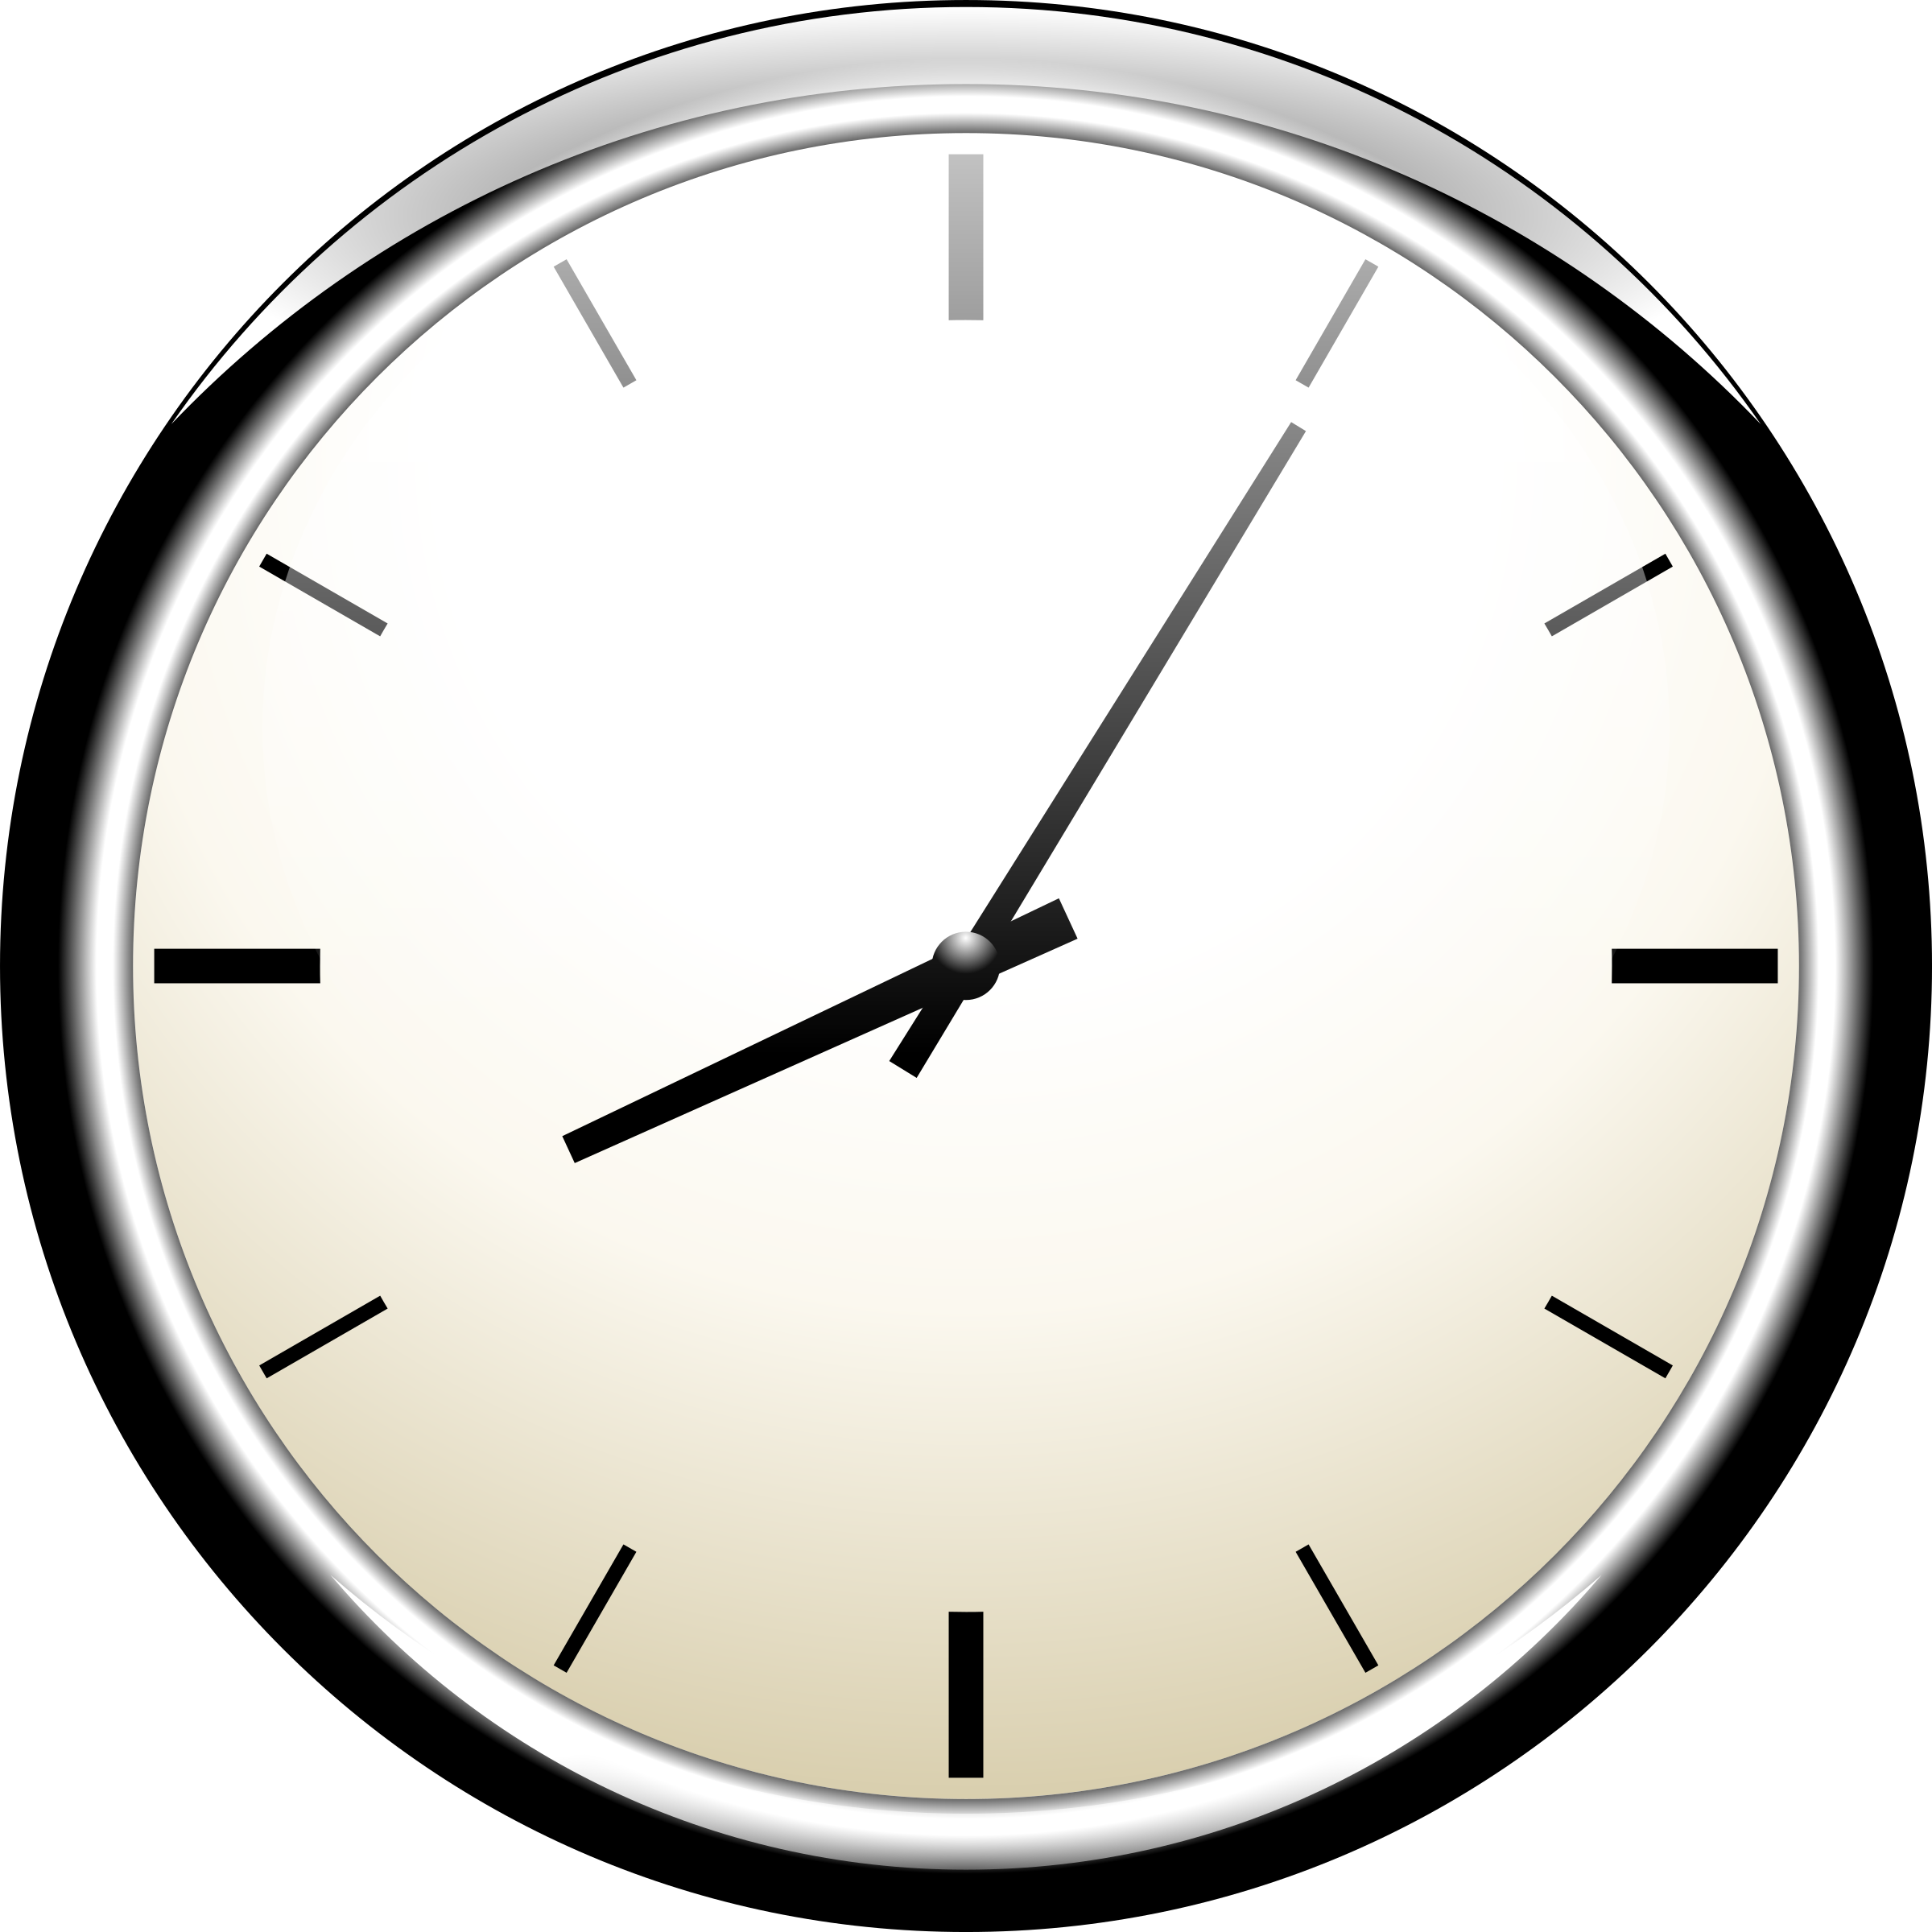 Sun clock clipart image royalty free download Clipart - Clock + Calendar image royalty free download